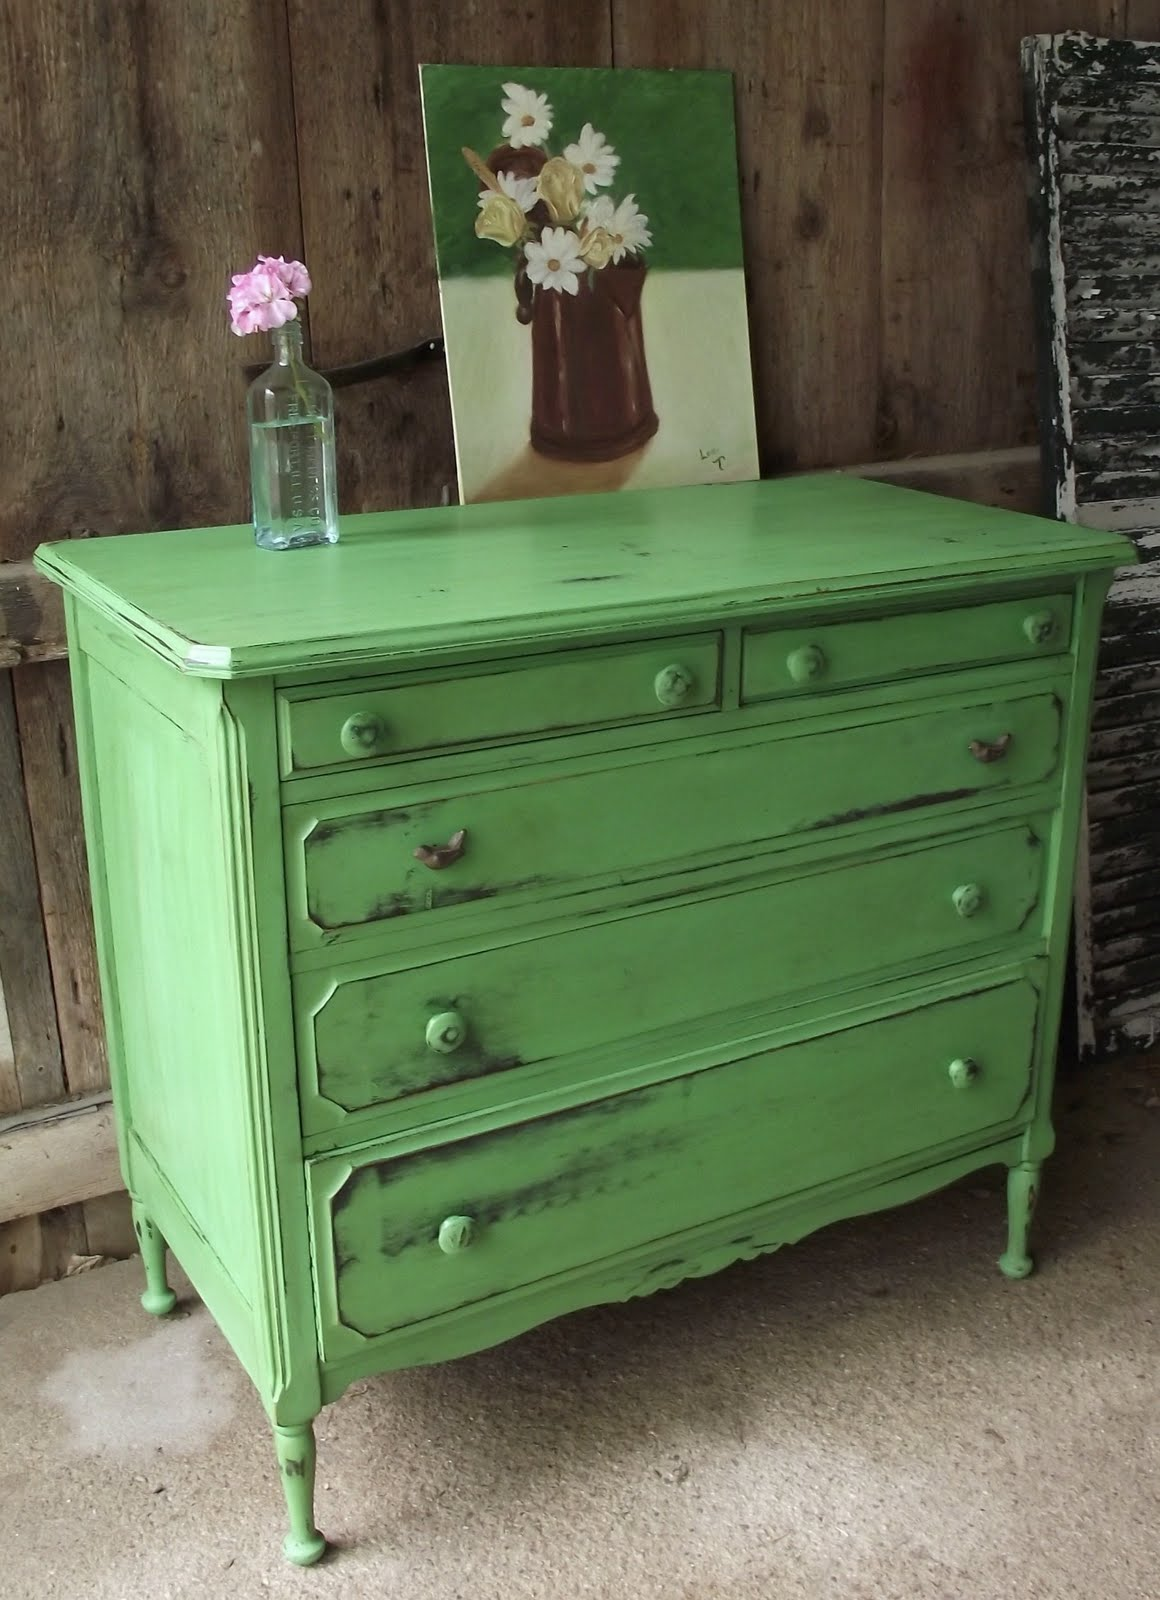 Give your furniture an antiqued or distressed look ladulcelavie - Filename Green Dresser 003 Good Jpg